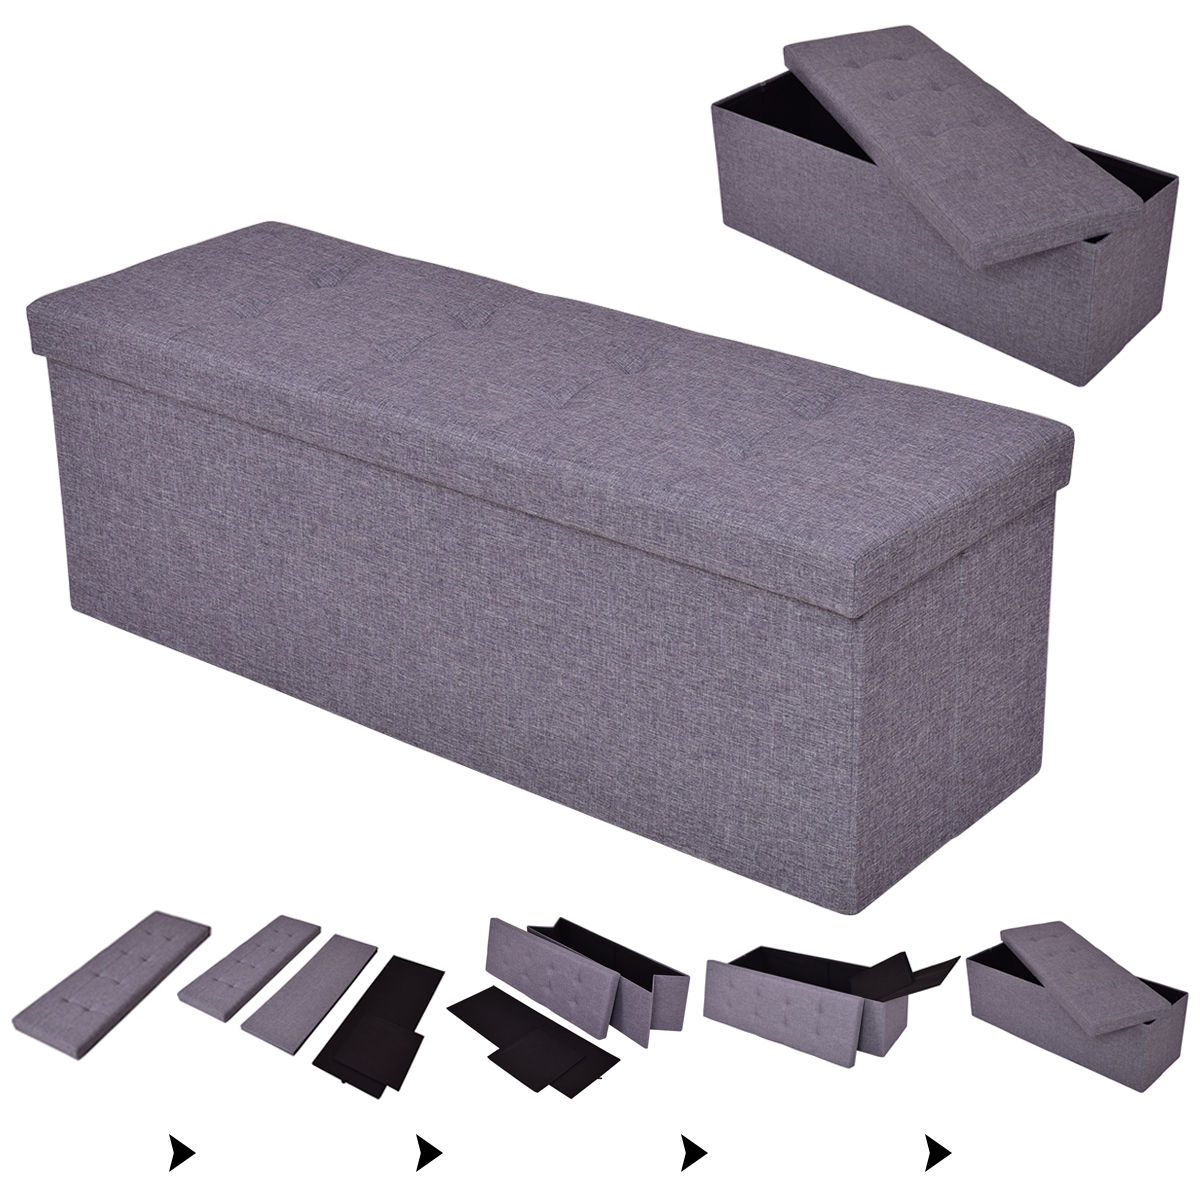 Gymax Folding Ottoman Bench Storage Stool Box Footrest Gray